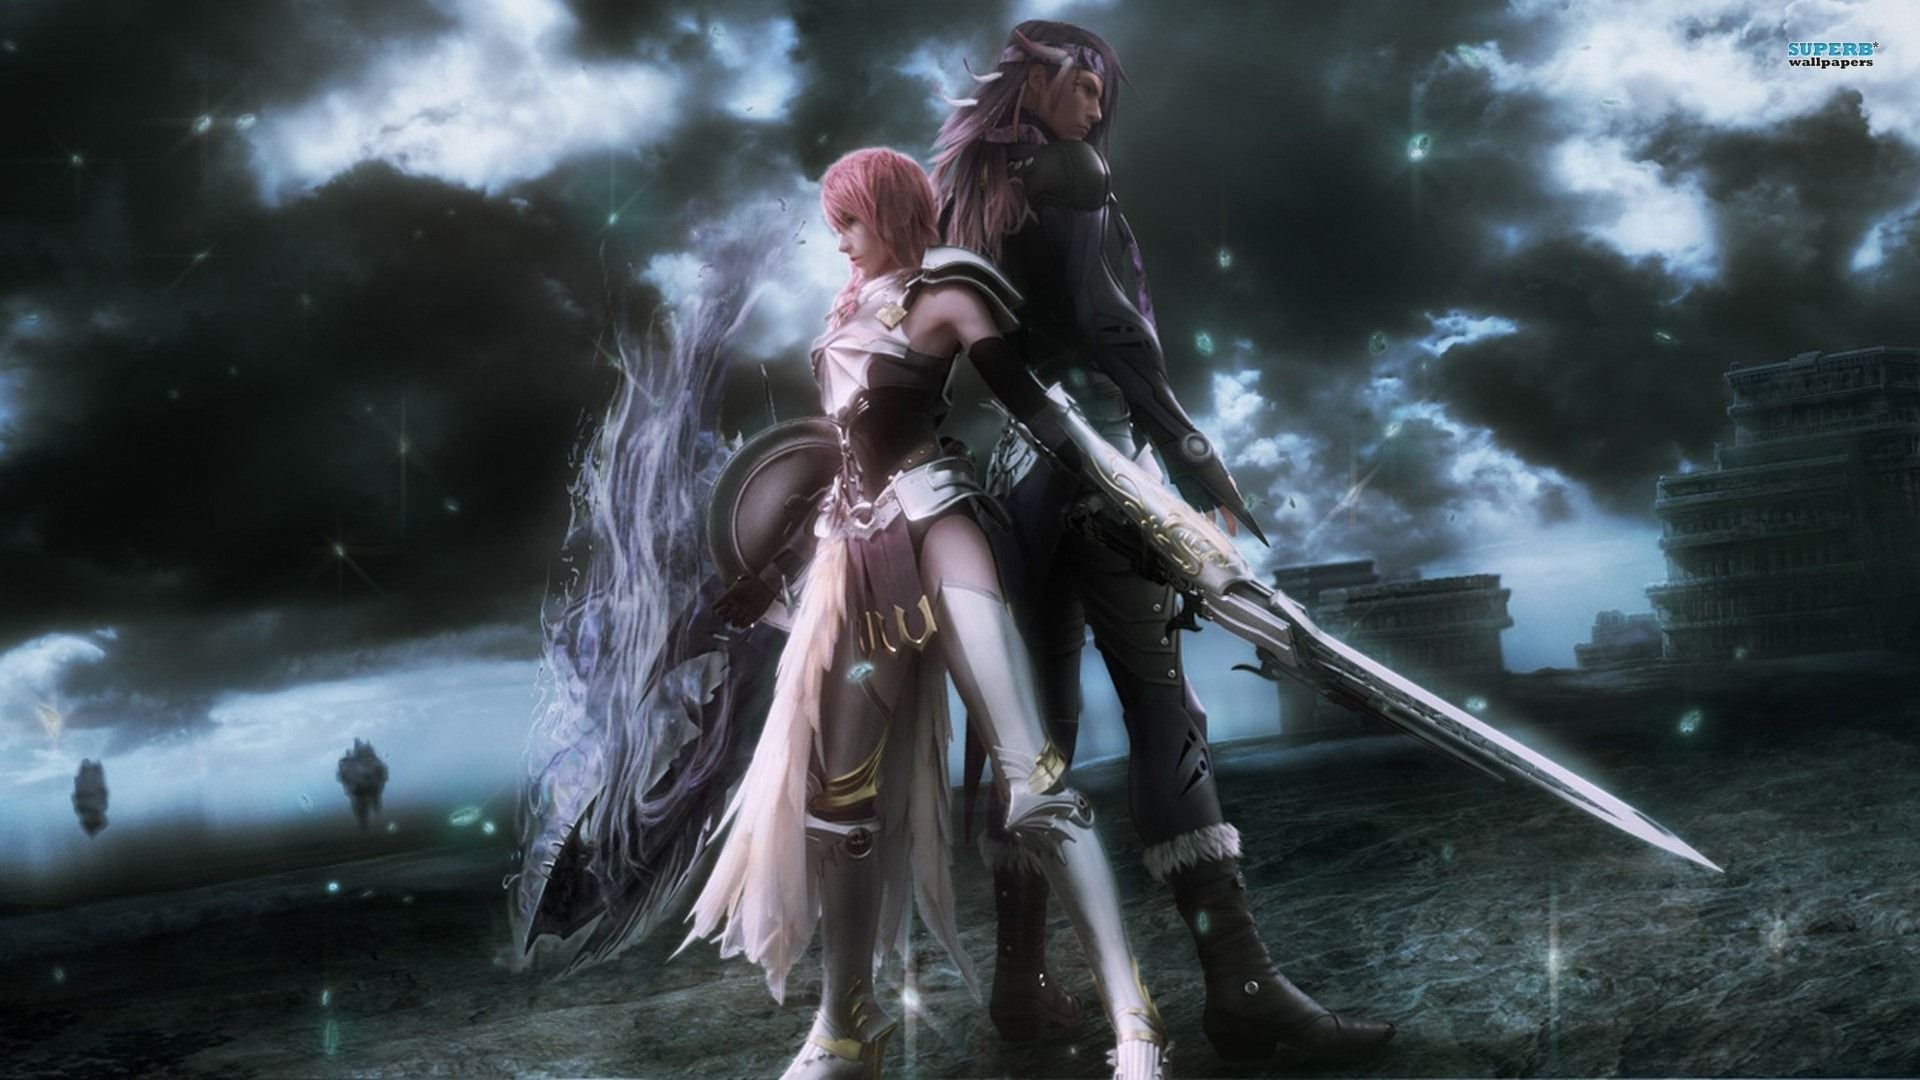 lightning final fantasy wallpaper (72+ images)